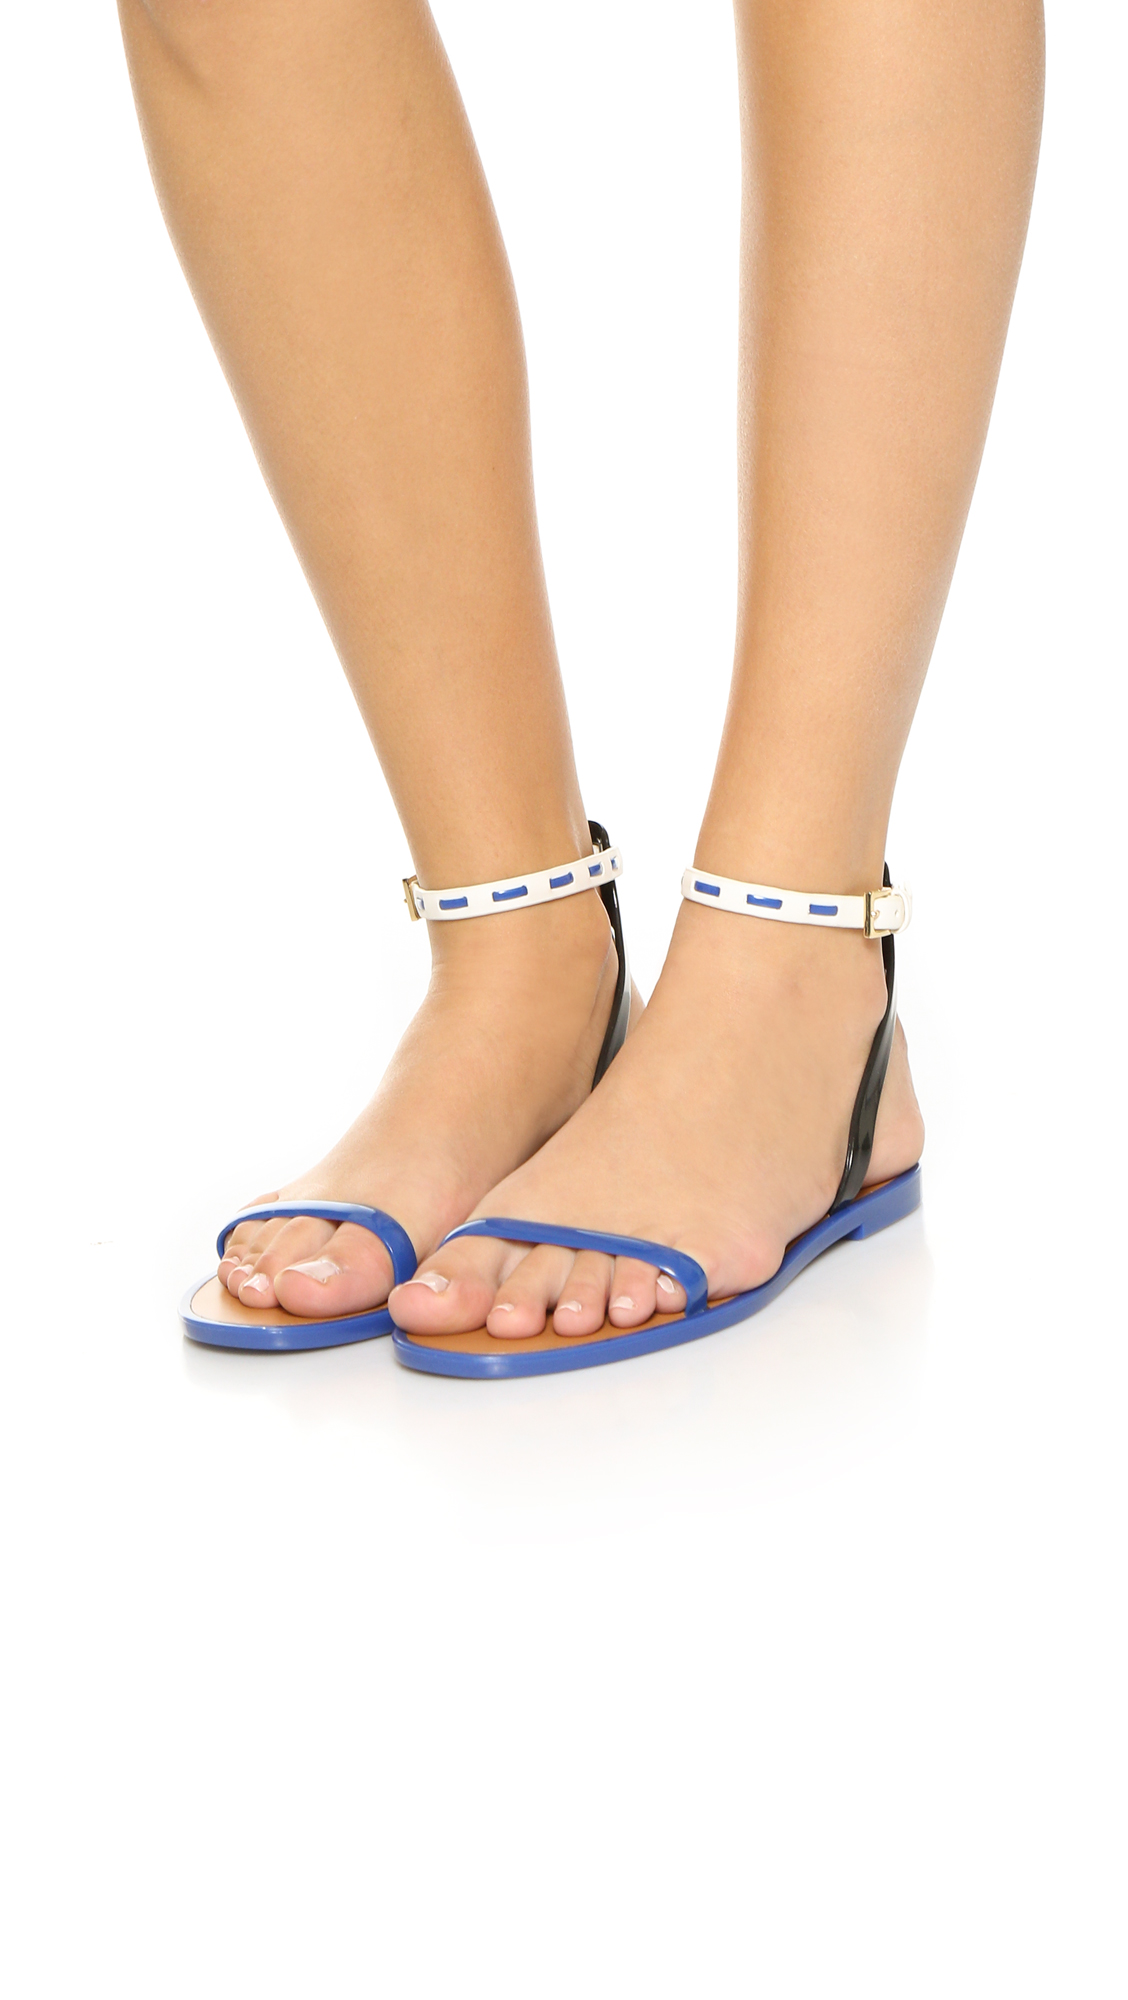 e5f7821dcdc Tory Burch Leather Ankle Strap Jelly Sandals